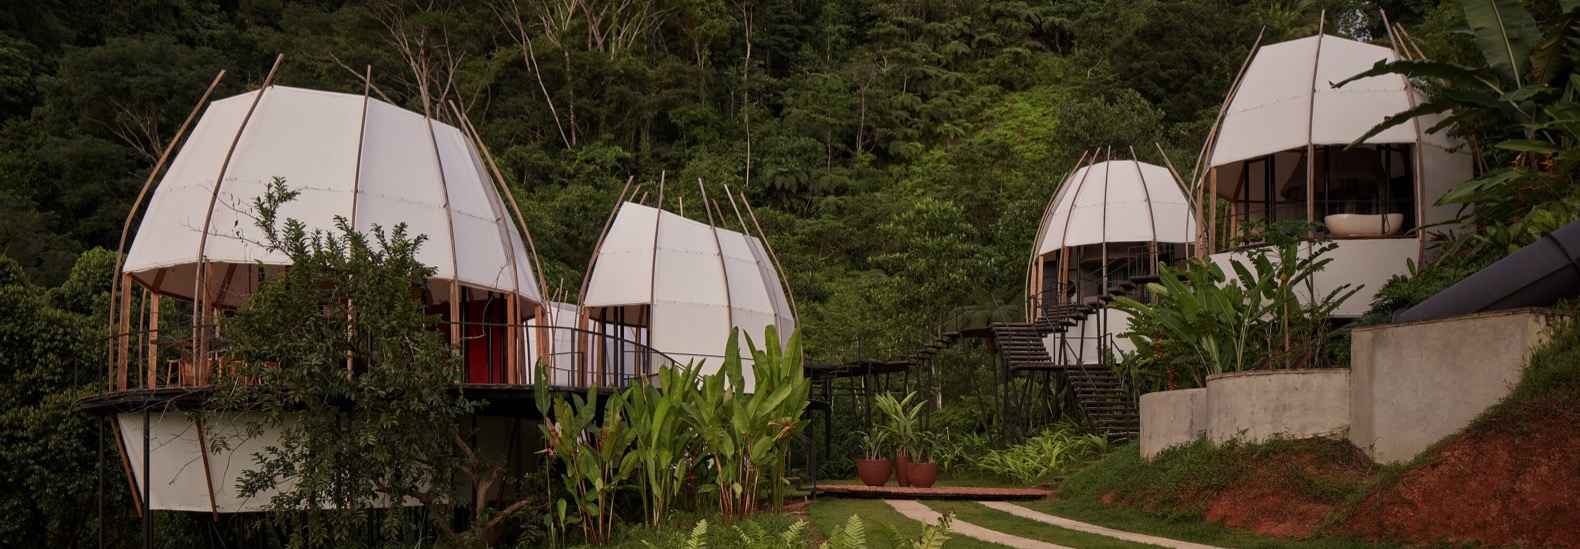 Pod-shaped Coco Villa immerses guests in nature and luxury